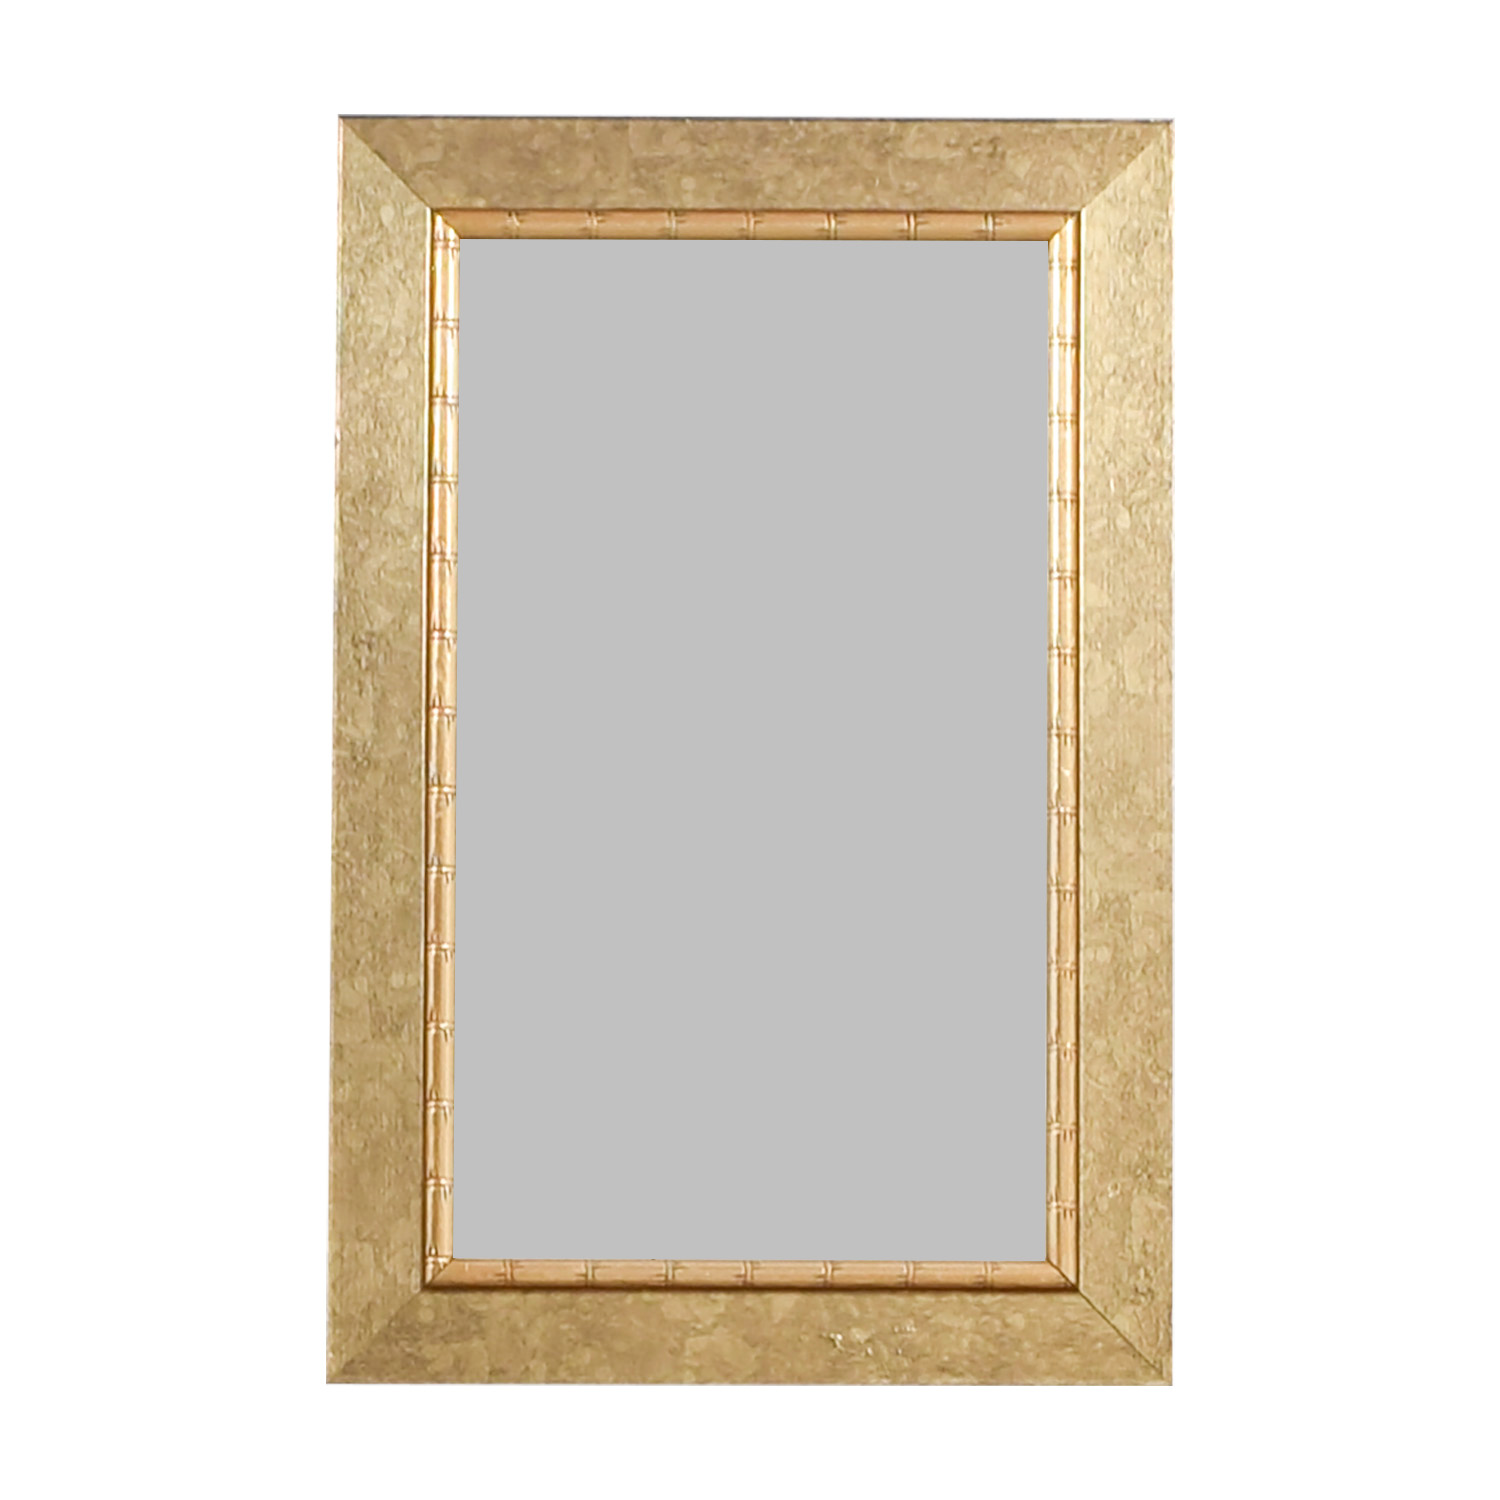 Turner Wall Accessories Turner Wall Accessories Gold Leaf Mirror nyc